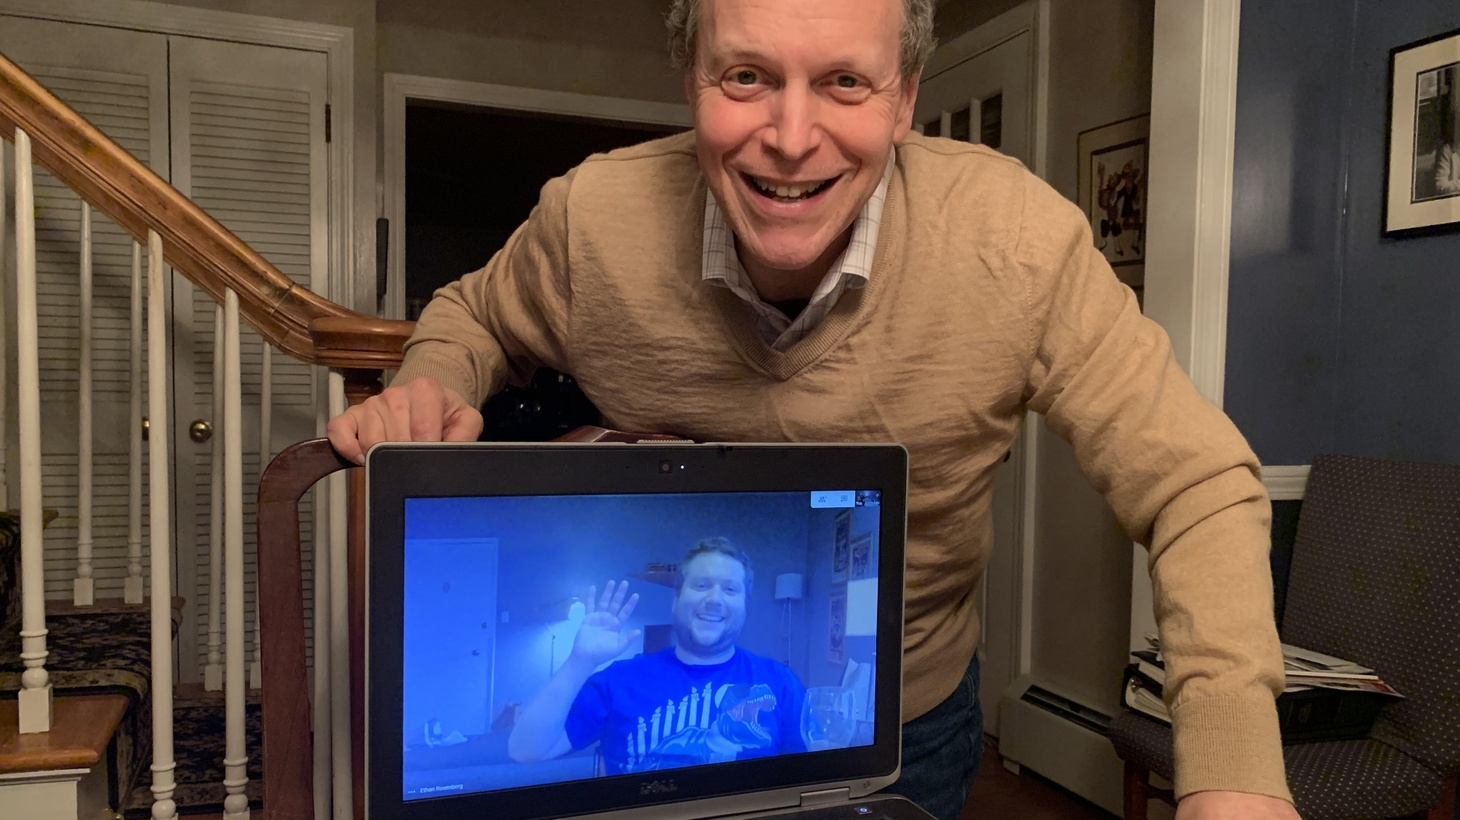 Alan Rosenberg and his son Ethan use web cameras to connect for their Passover Seder. April 9, 2020.